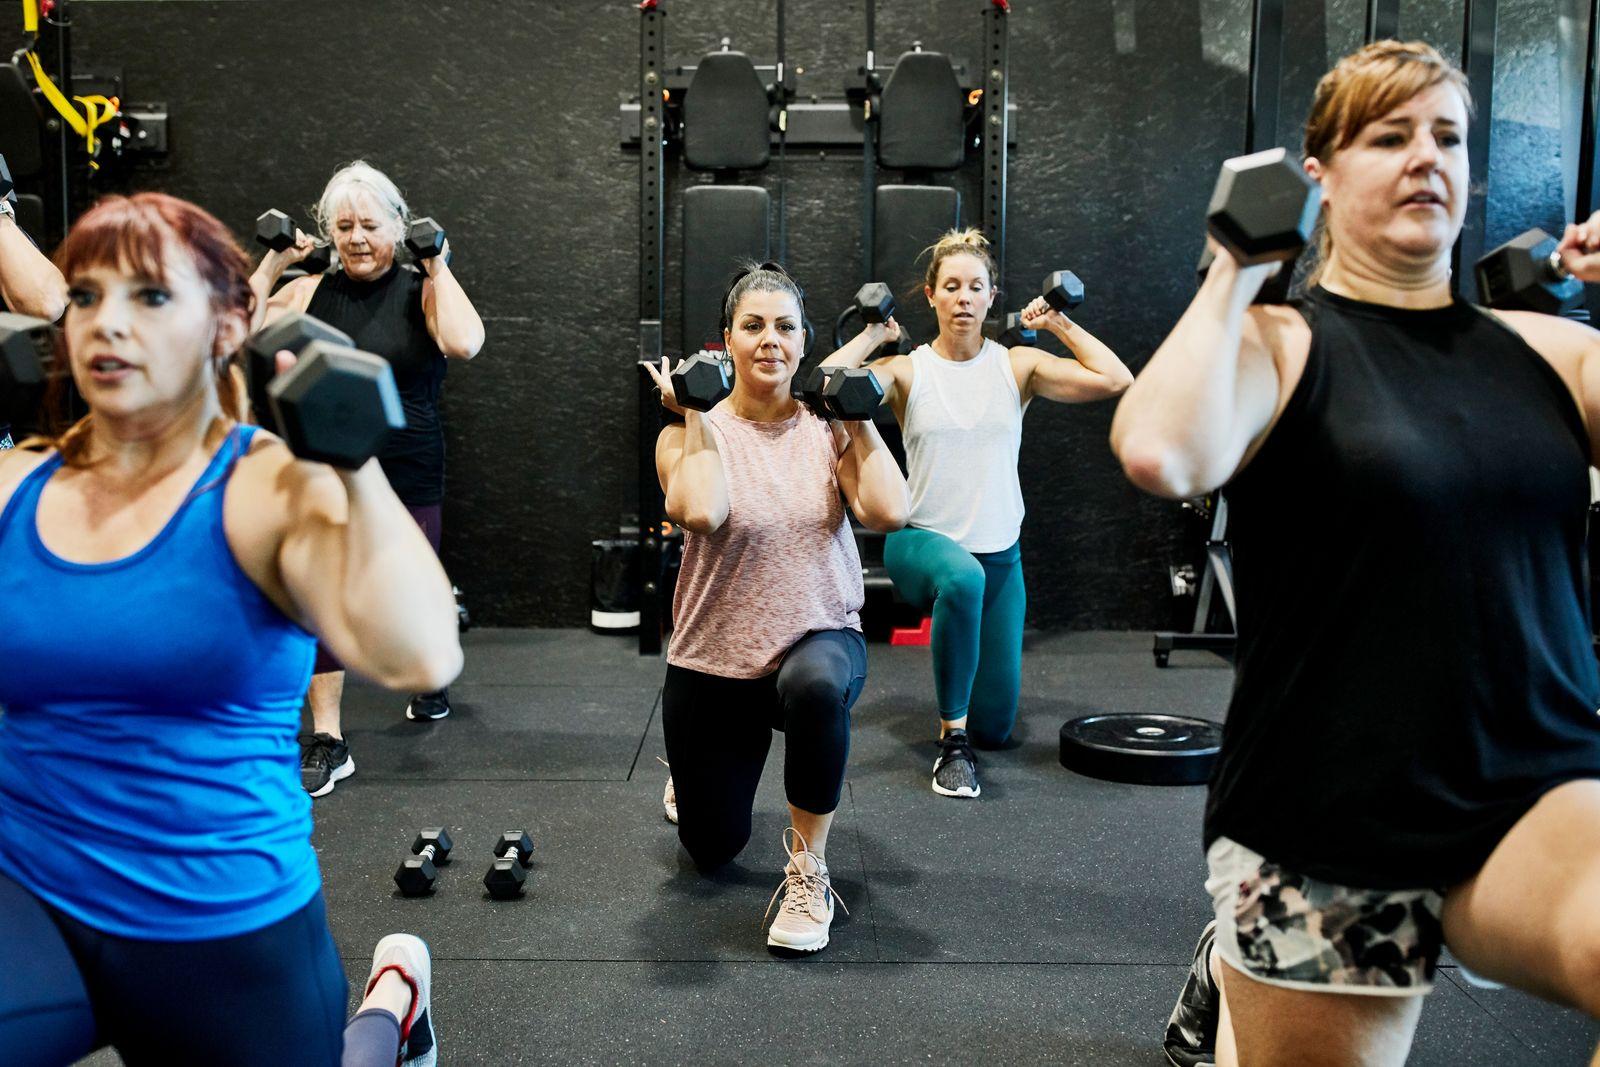 Womens fitness class doing dumbbell lunges in gym